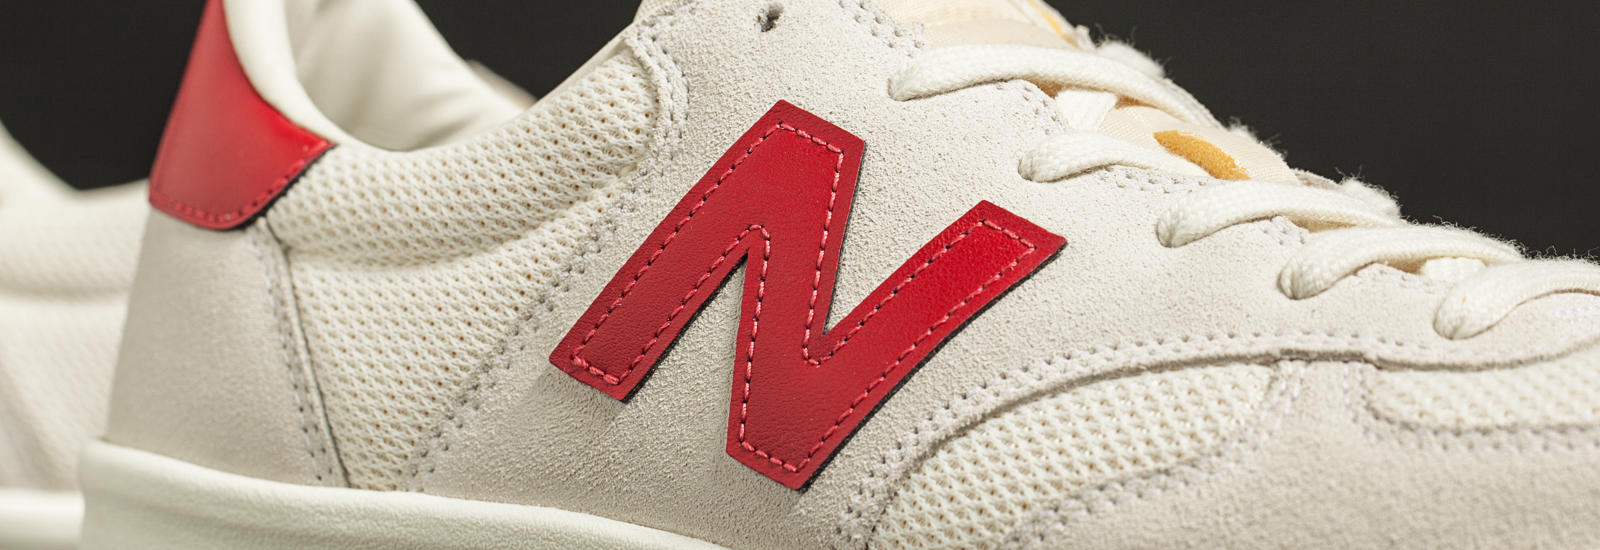 new balance 300 leather femme